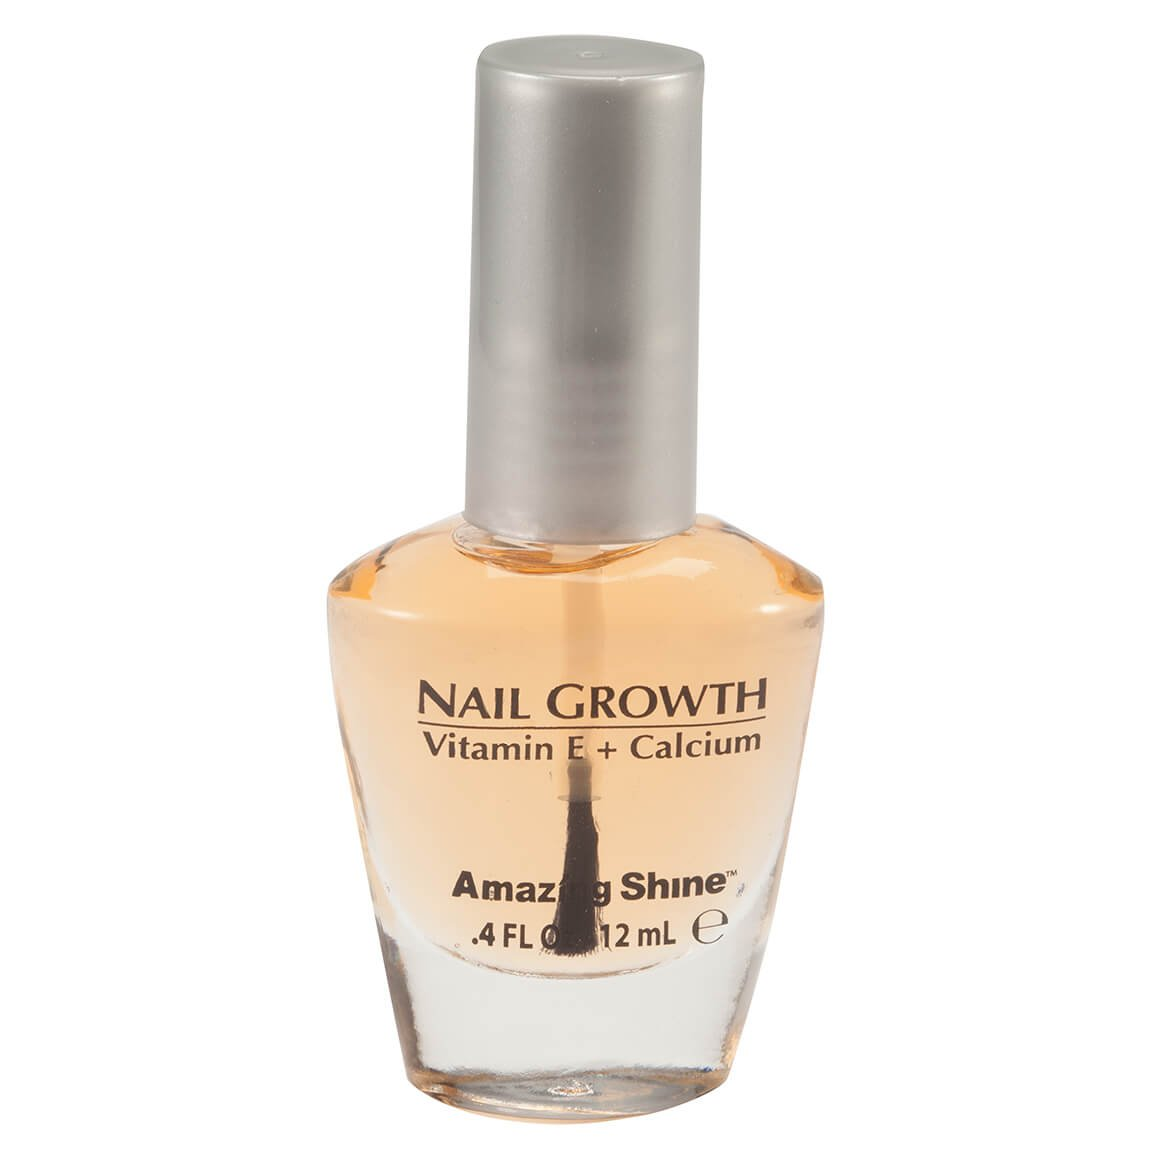 Amazon.com : Nail Growth with Vitamin E & Calcium by AsWeChange ...